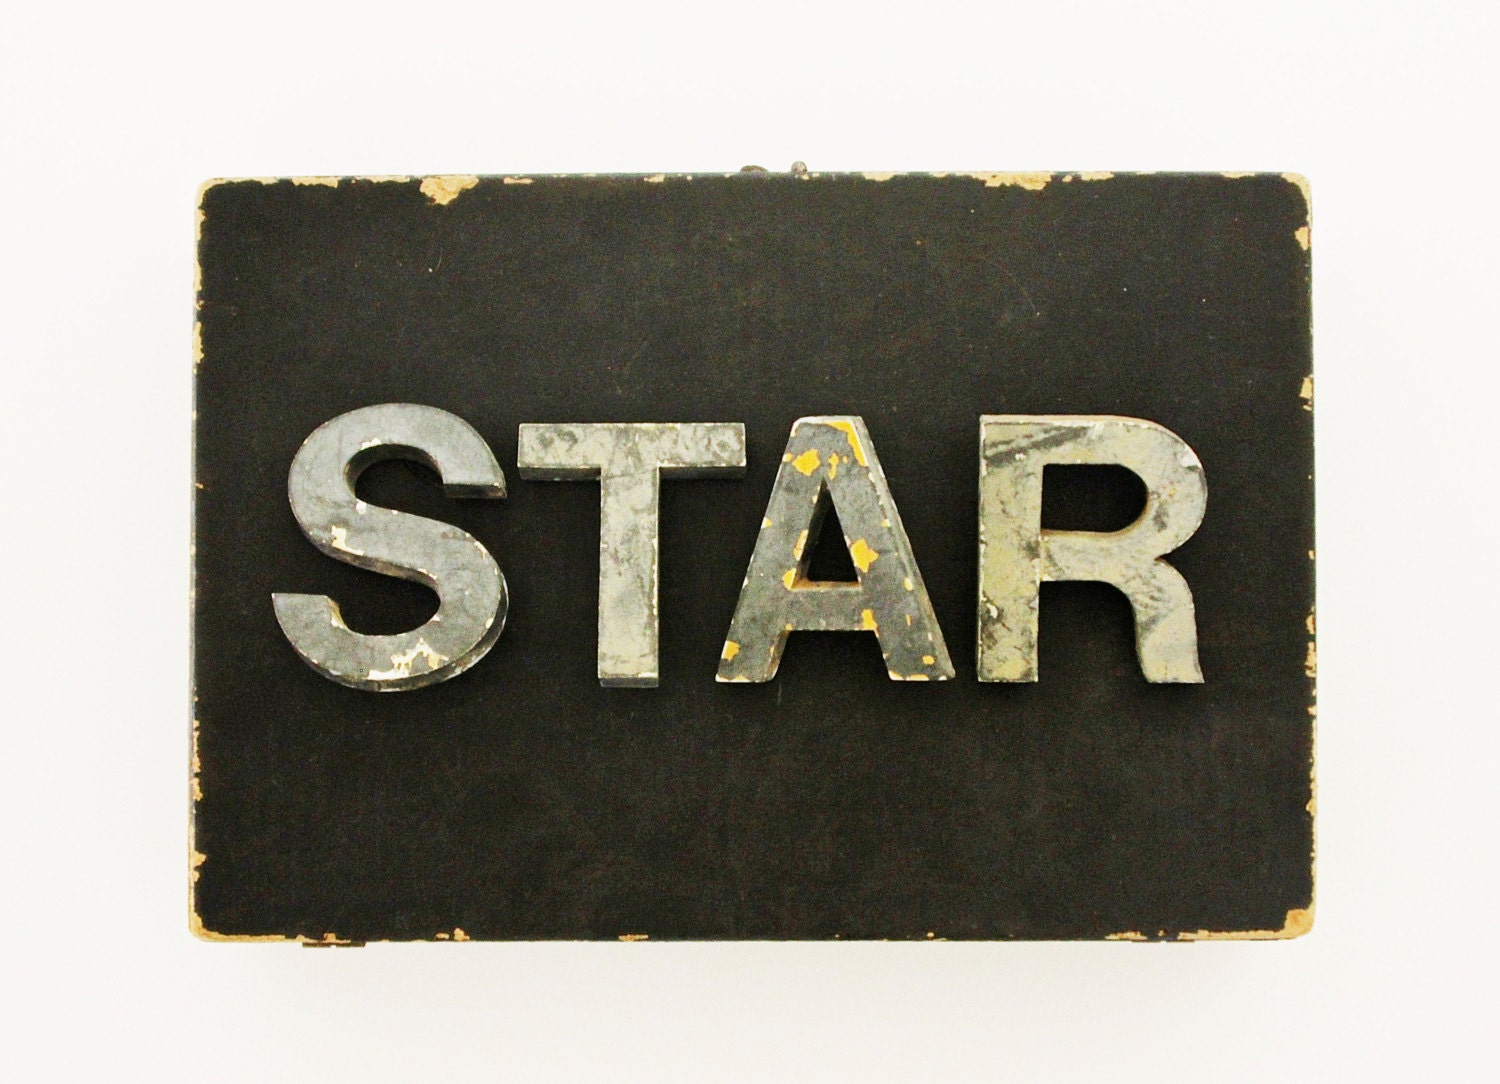 STAR - Vintage Letters - Vintage Marquee Letters - Large - Sign - Home Decor - Industrial - Metal - Supplies - NIght - becaruns